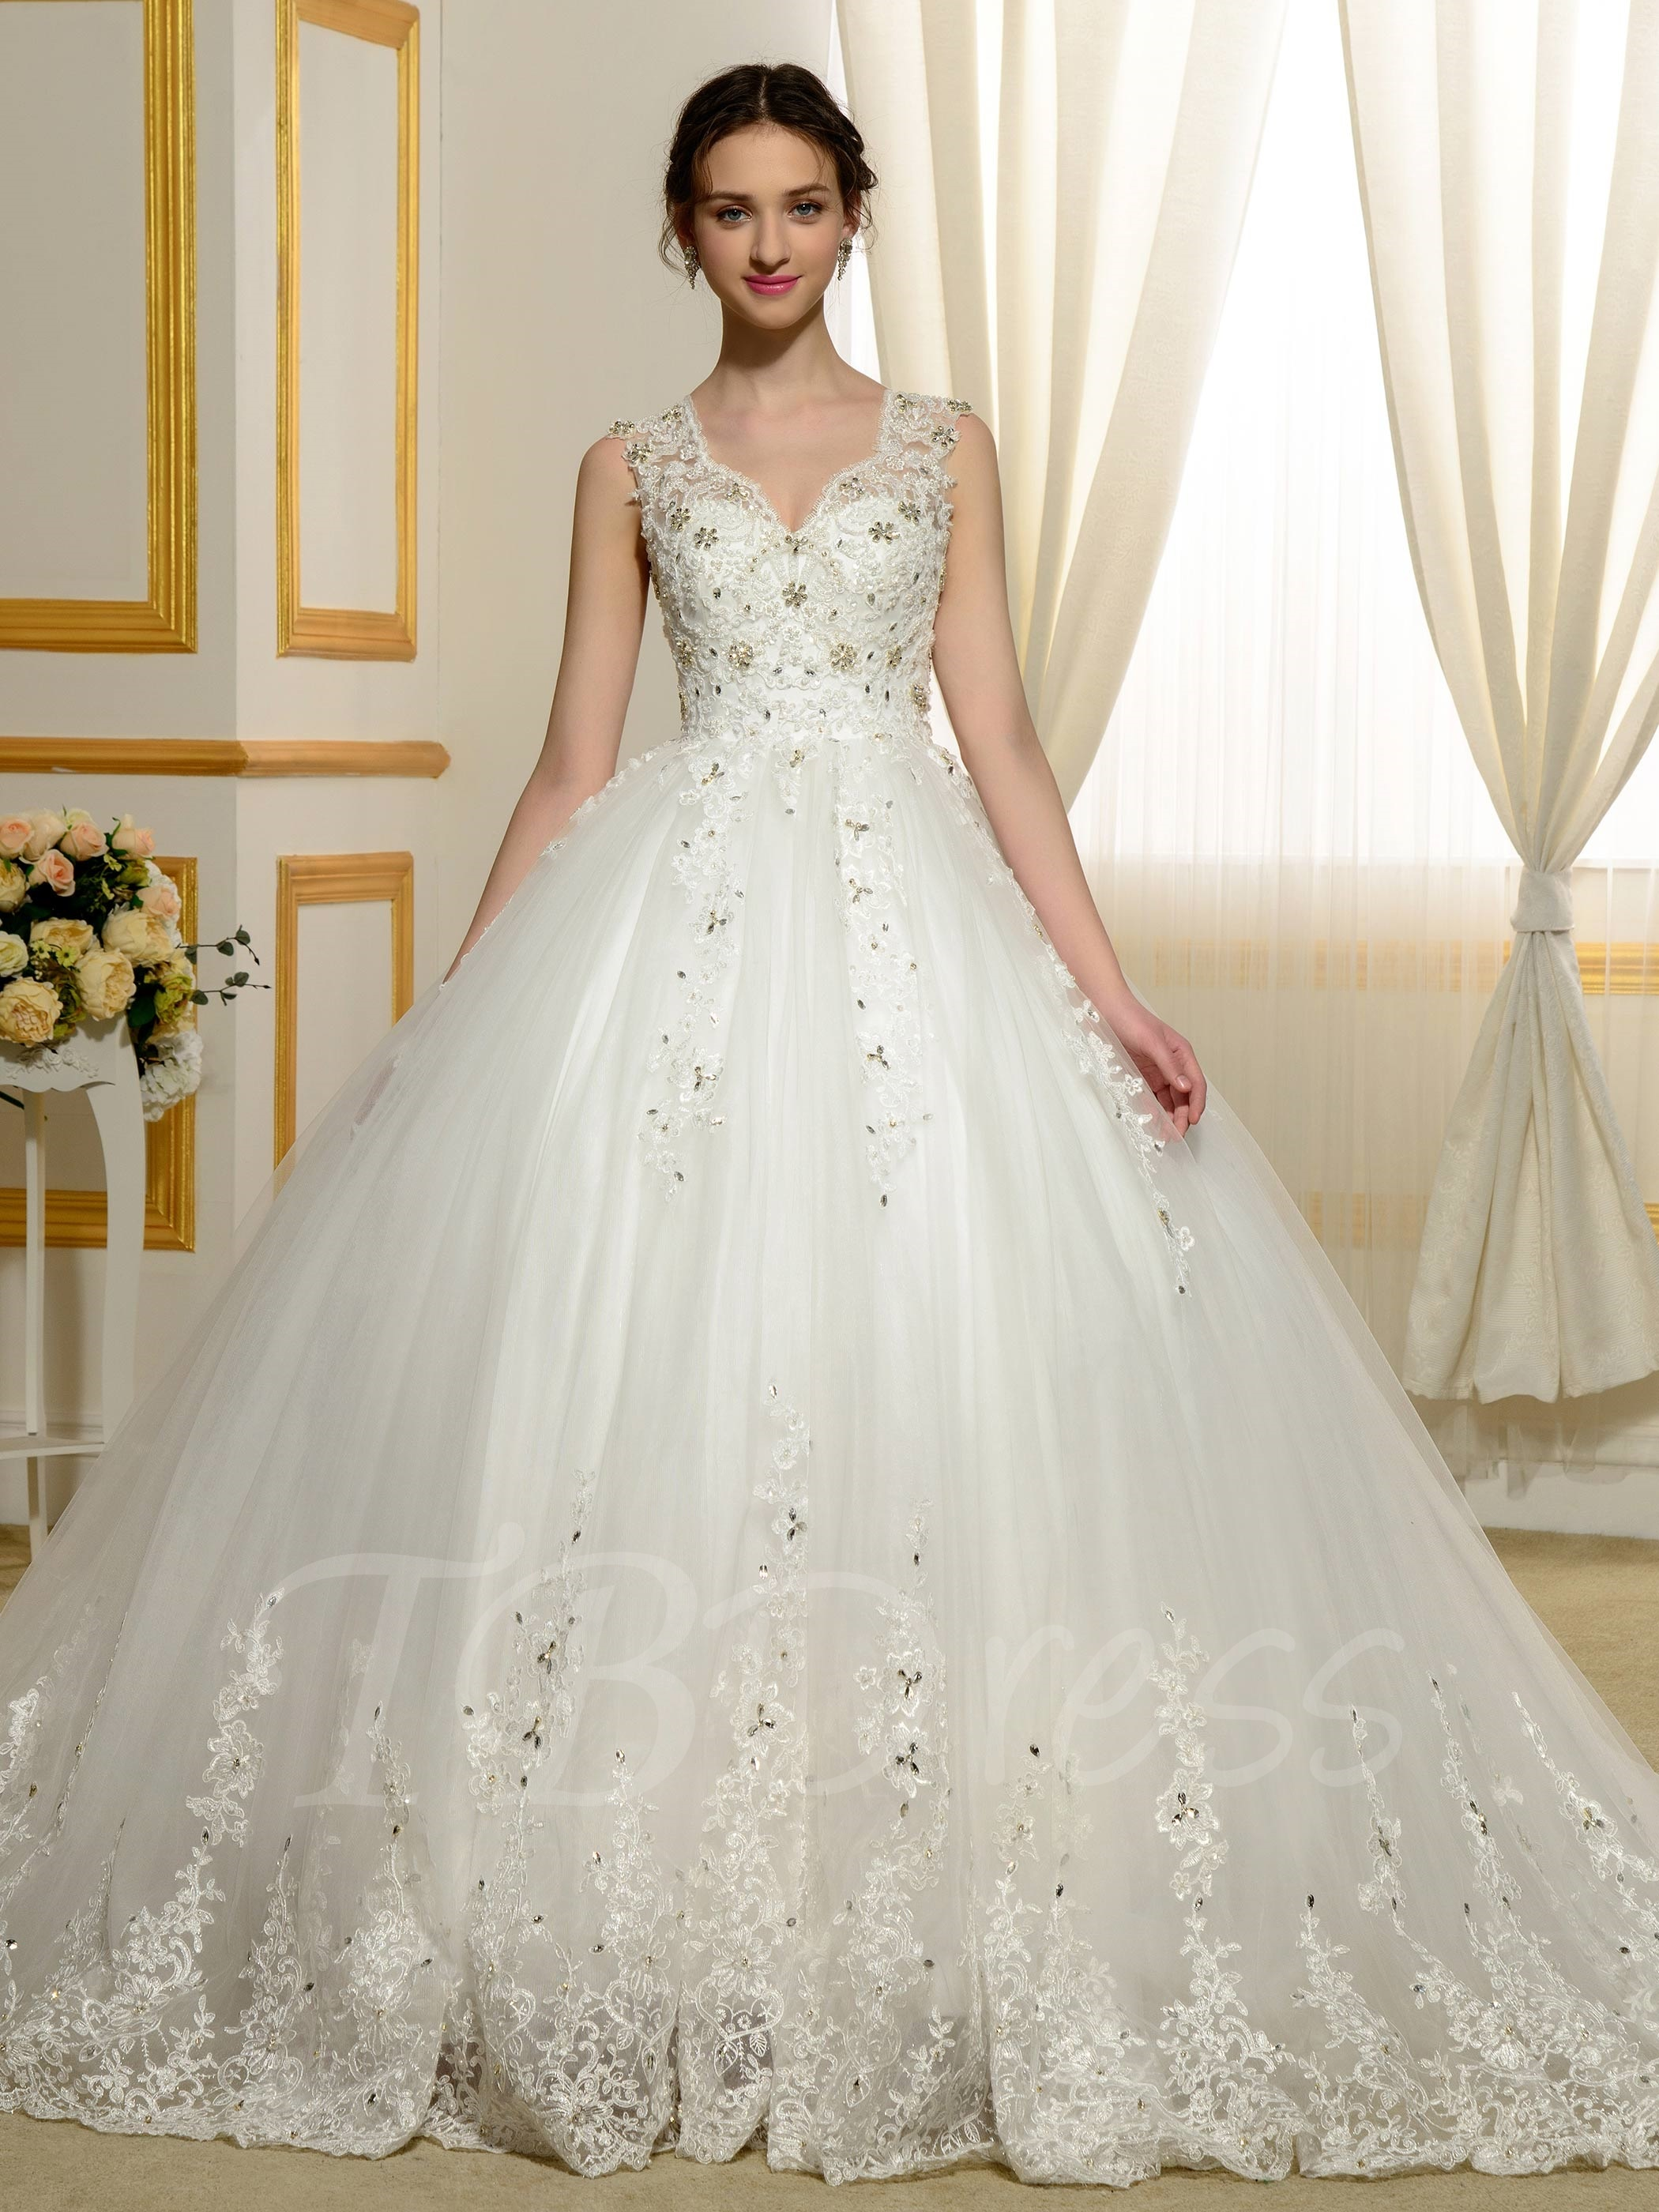 Ball Gown Wedding Dresses Advantages: Unique Ball Gown Wedding Dresses At Reisefeber.org